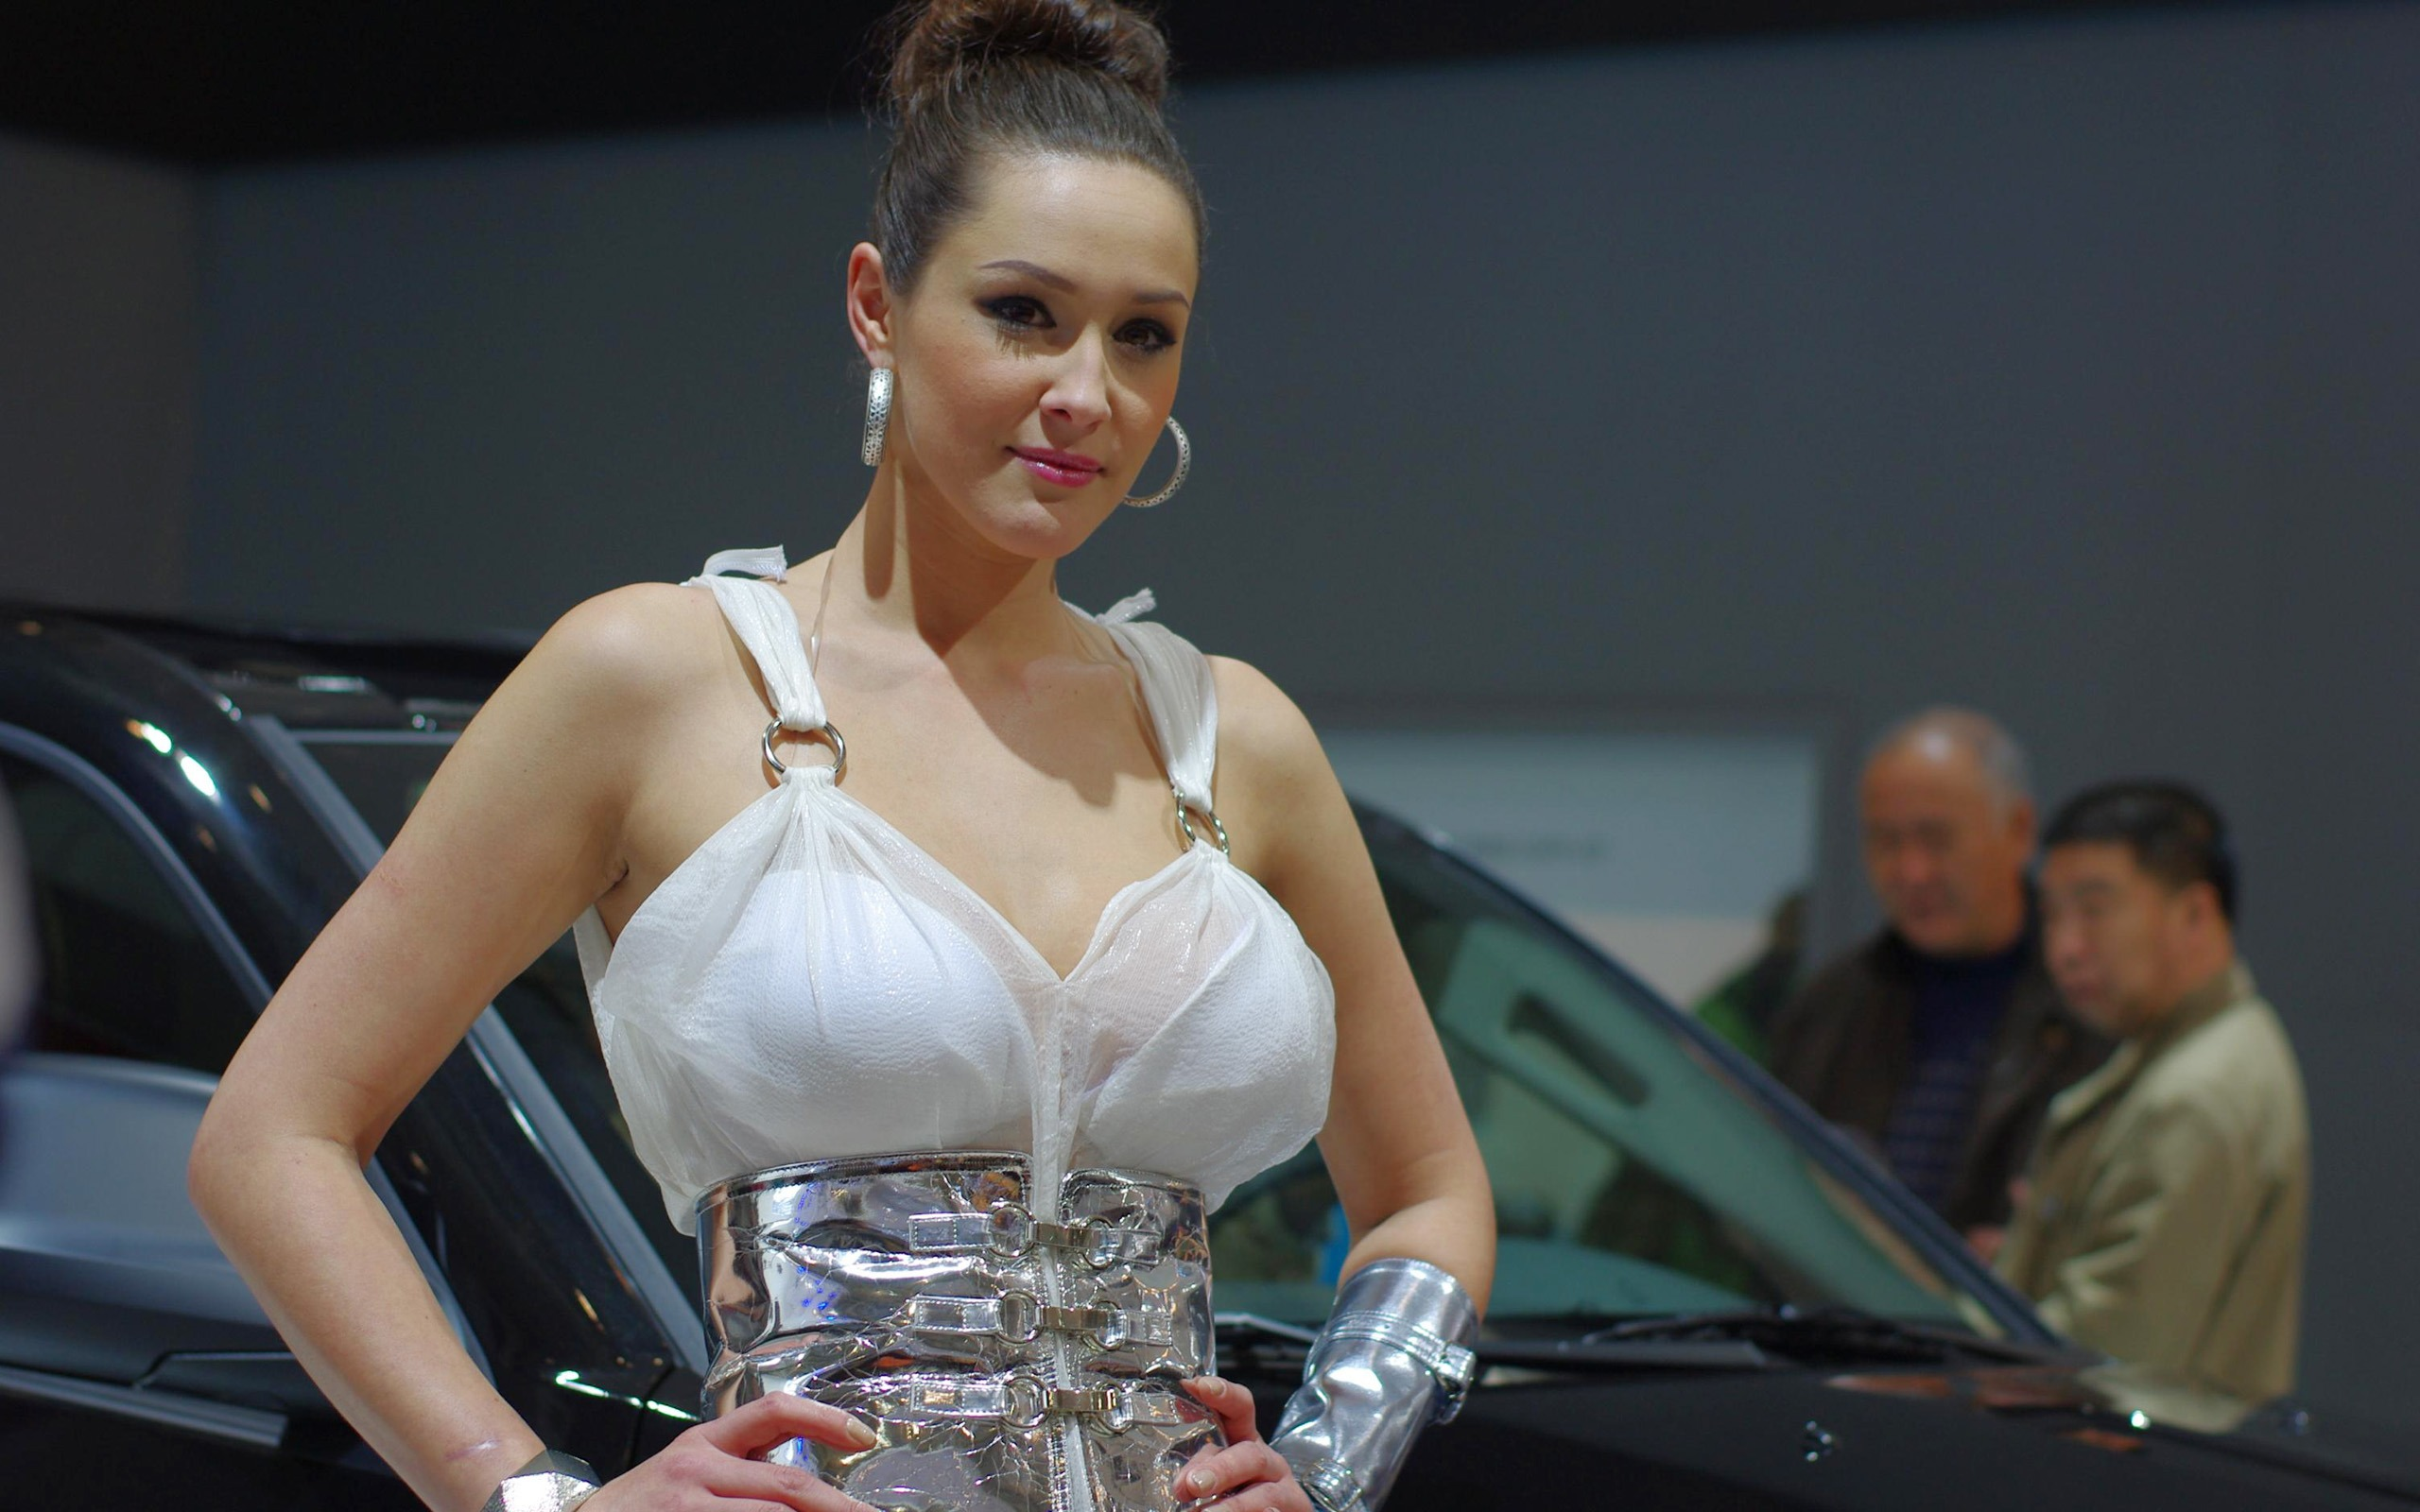 2010 Beijing Auto Show beauty (michael68 works) #11 - 2560x1600